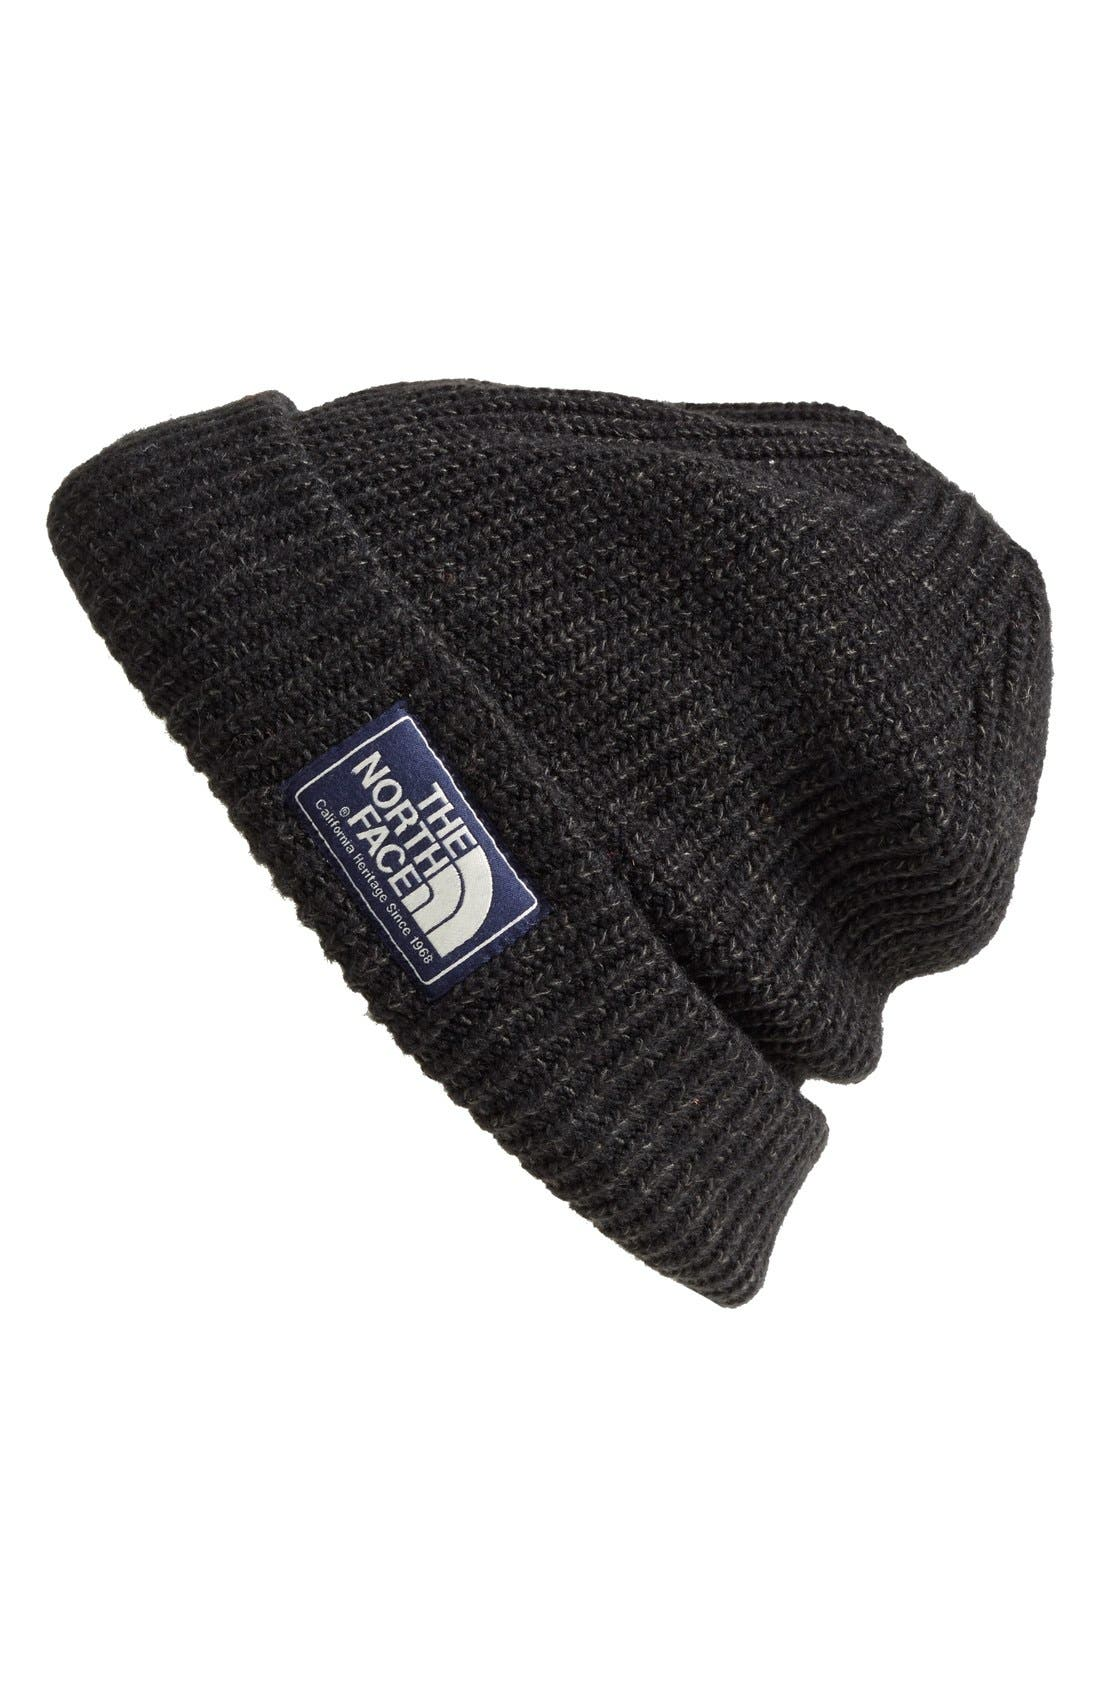 'Salty Dog' Beanie,                         Main,                         color, The North Face Black